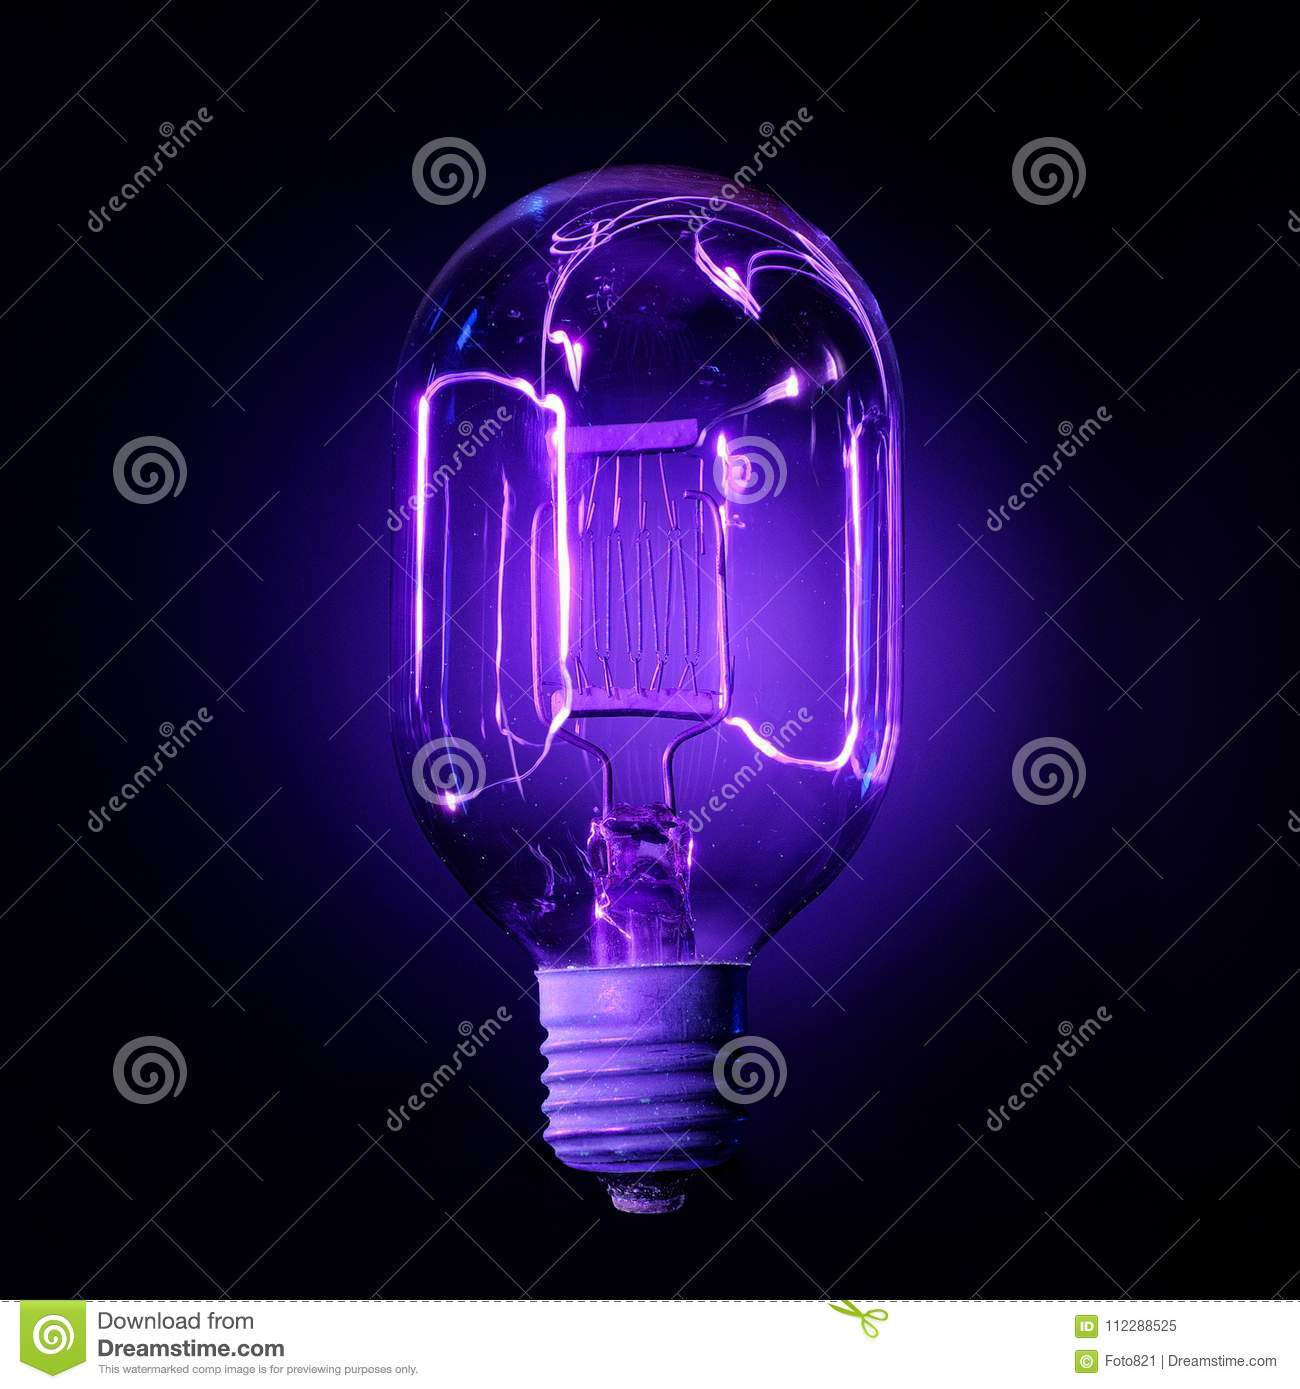 Ultraviolet Lamp Ultraviolet Lamp Stock Image Image Of Purple Clean 112288525